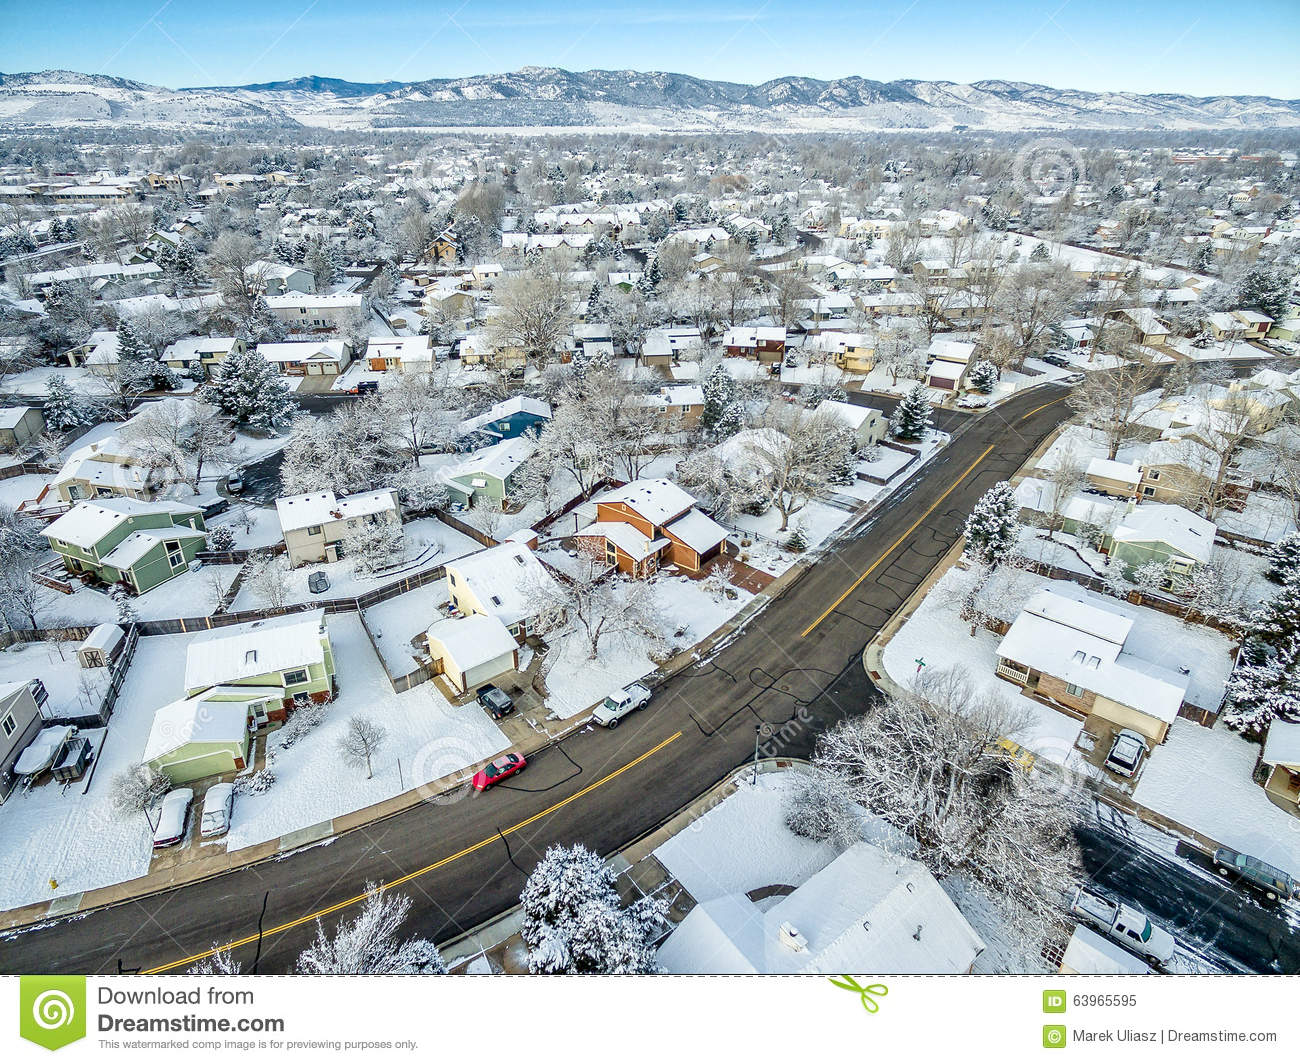 fort collins winter cityscape co usa december aerial view typical residential neighborhood along front range rocky mountains 63965595